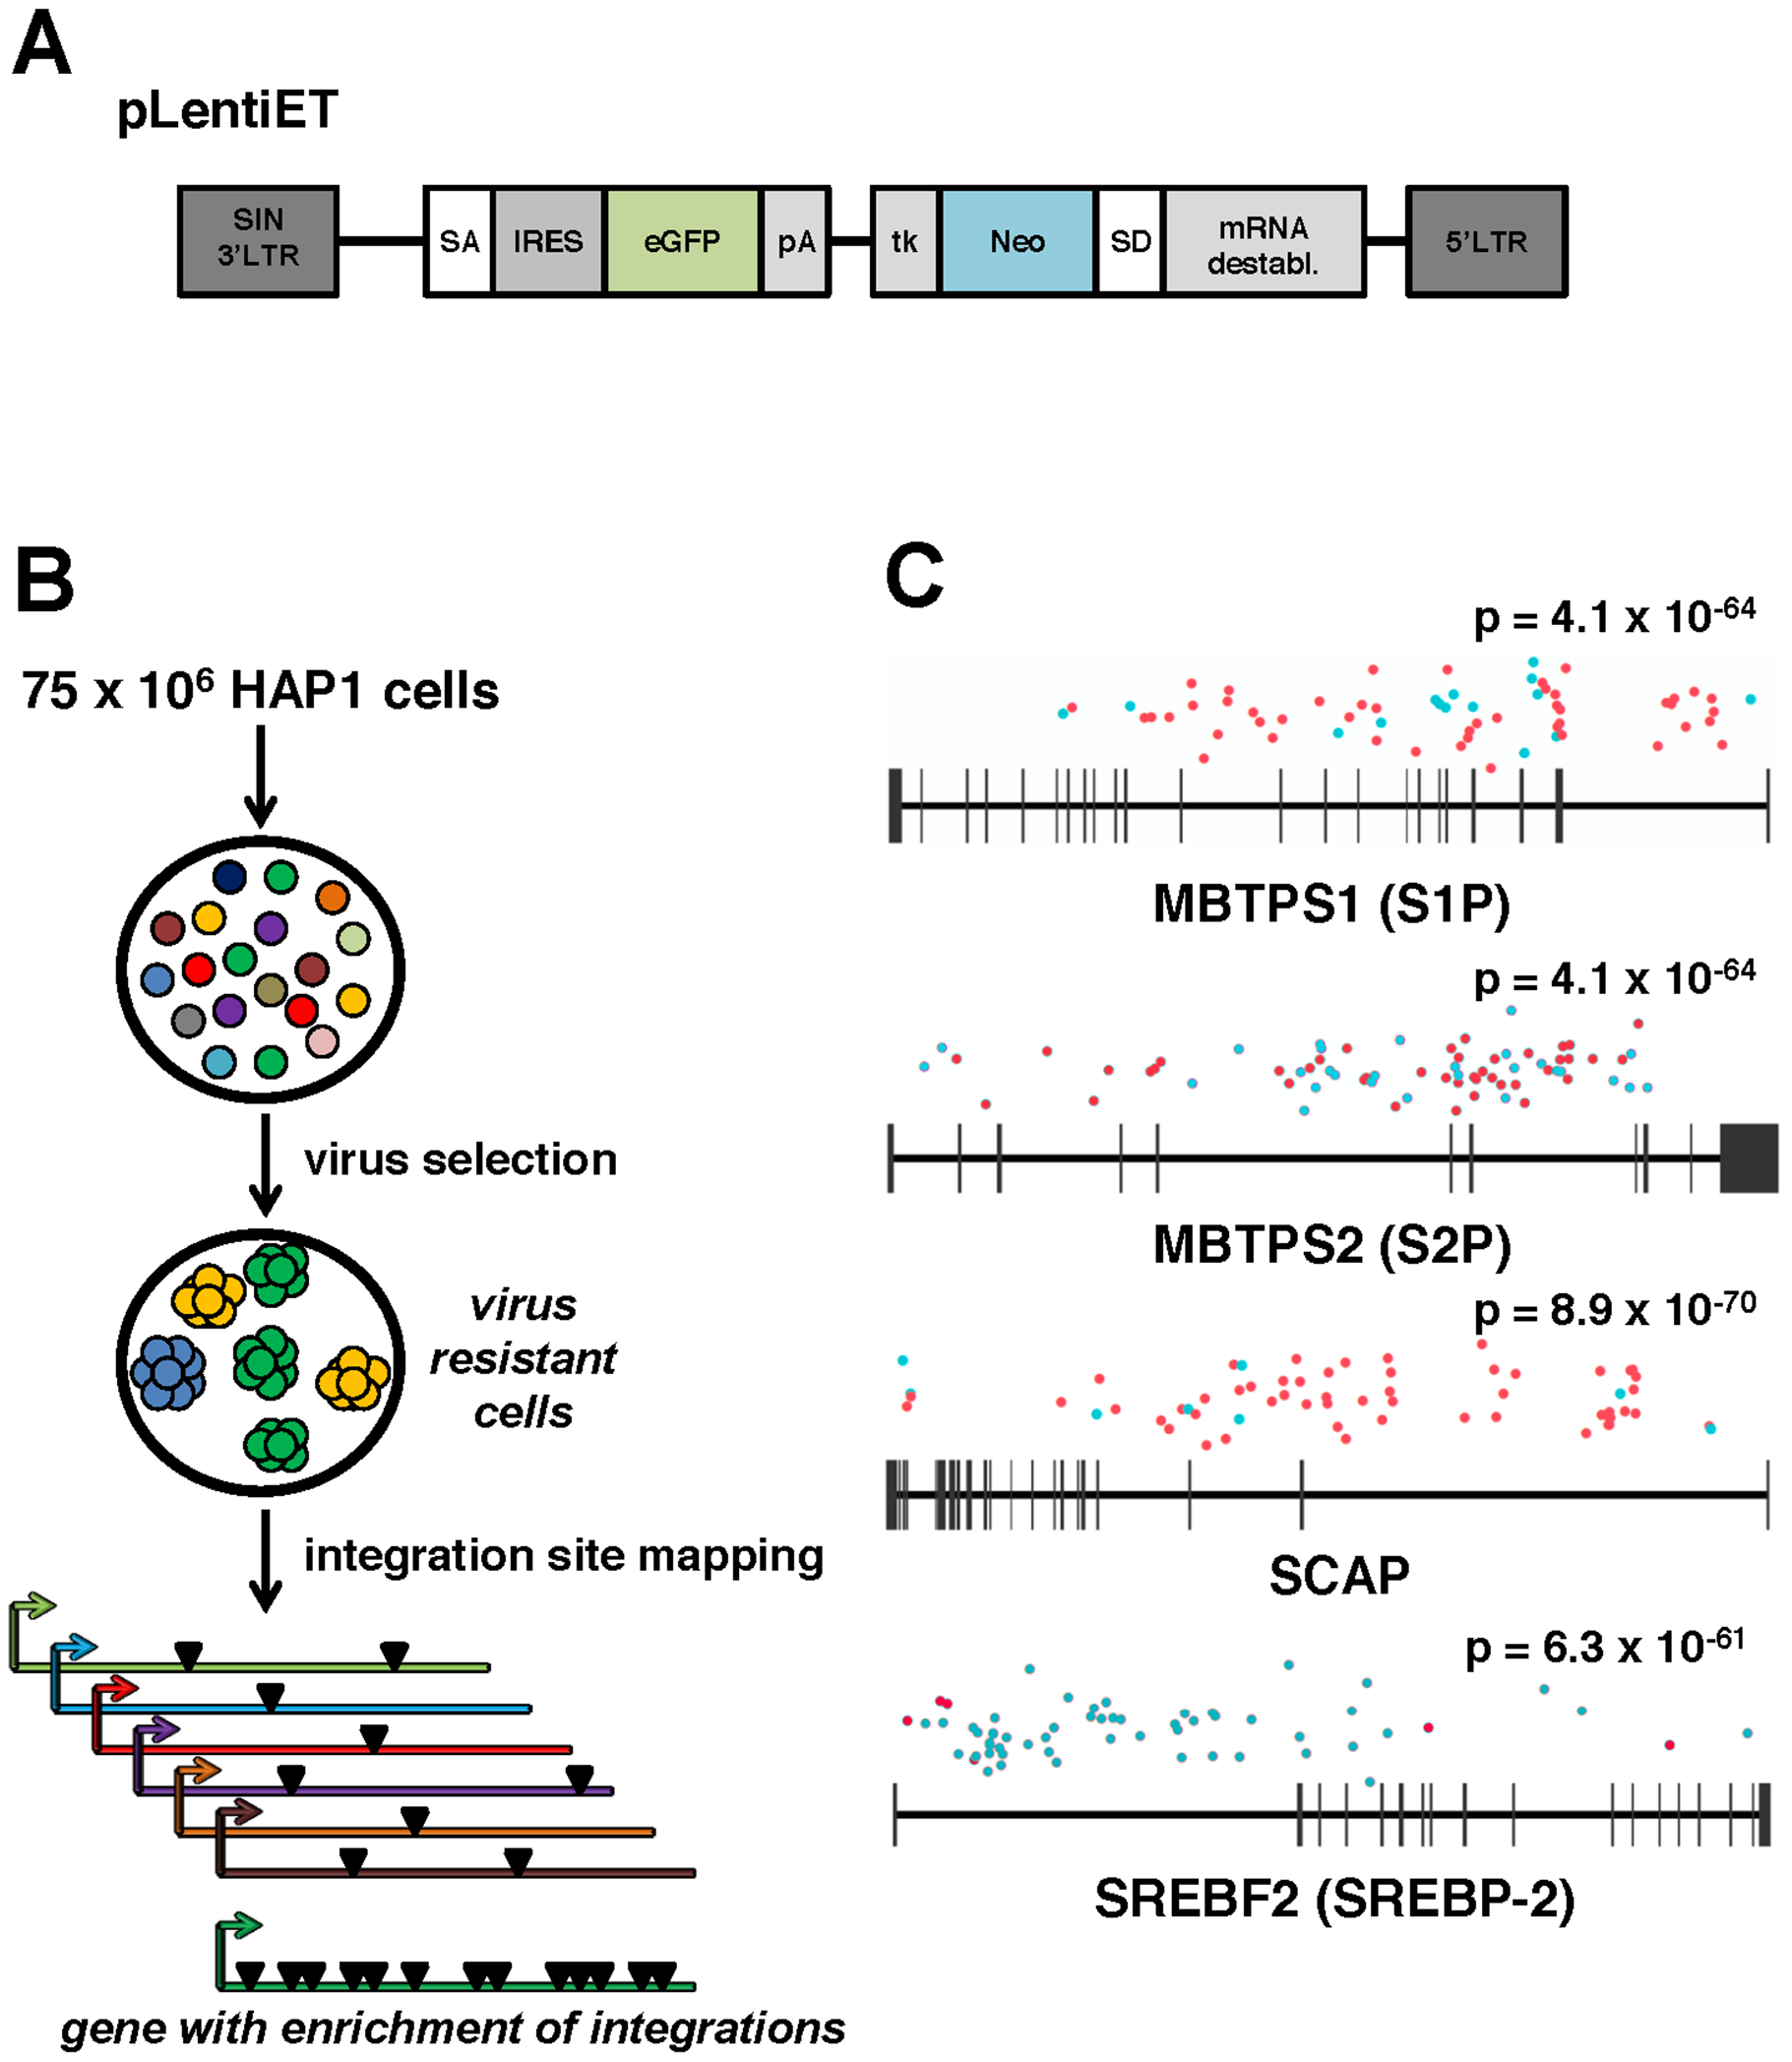 A forward genetic screen in human haploid cells identifies MBTPS1, MBTPS2, SCAP, and SREBF2 as required for ANDV infection.